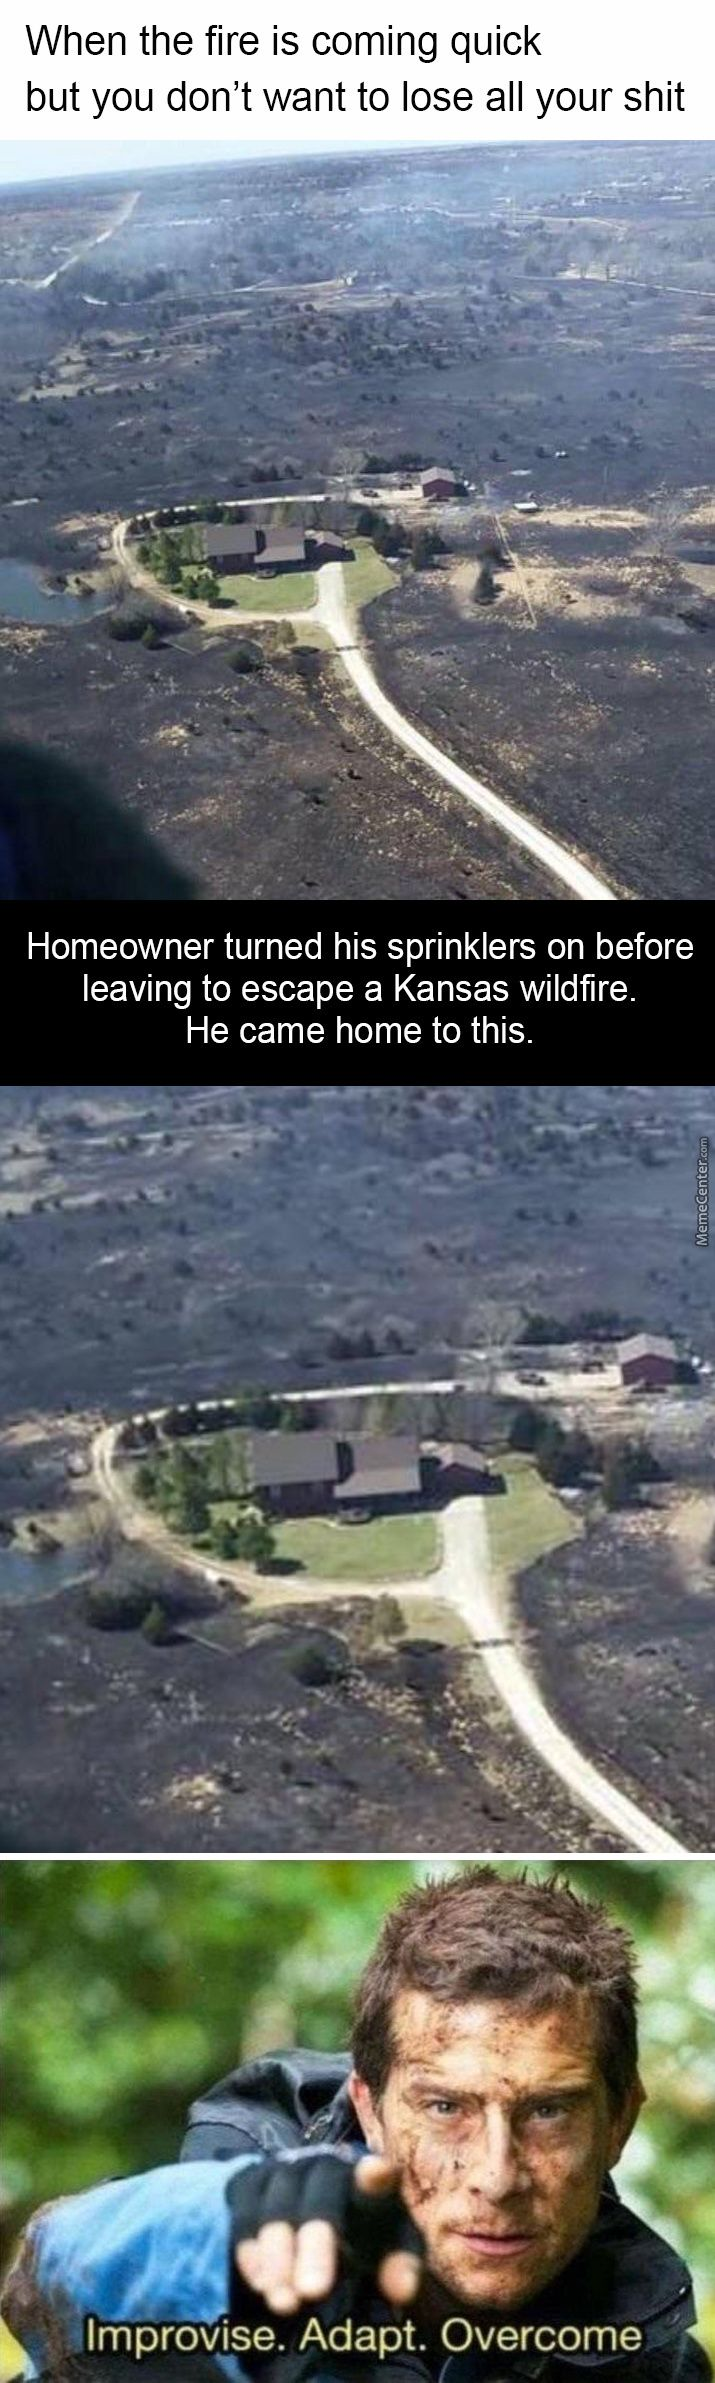 Home owner turns on sprinklers before evacuating his home from a wildfire in Kansas. Improvise! Adapt! Overcome!